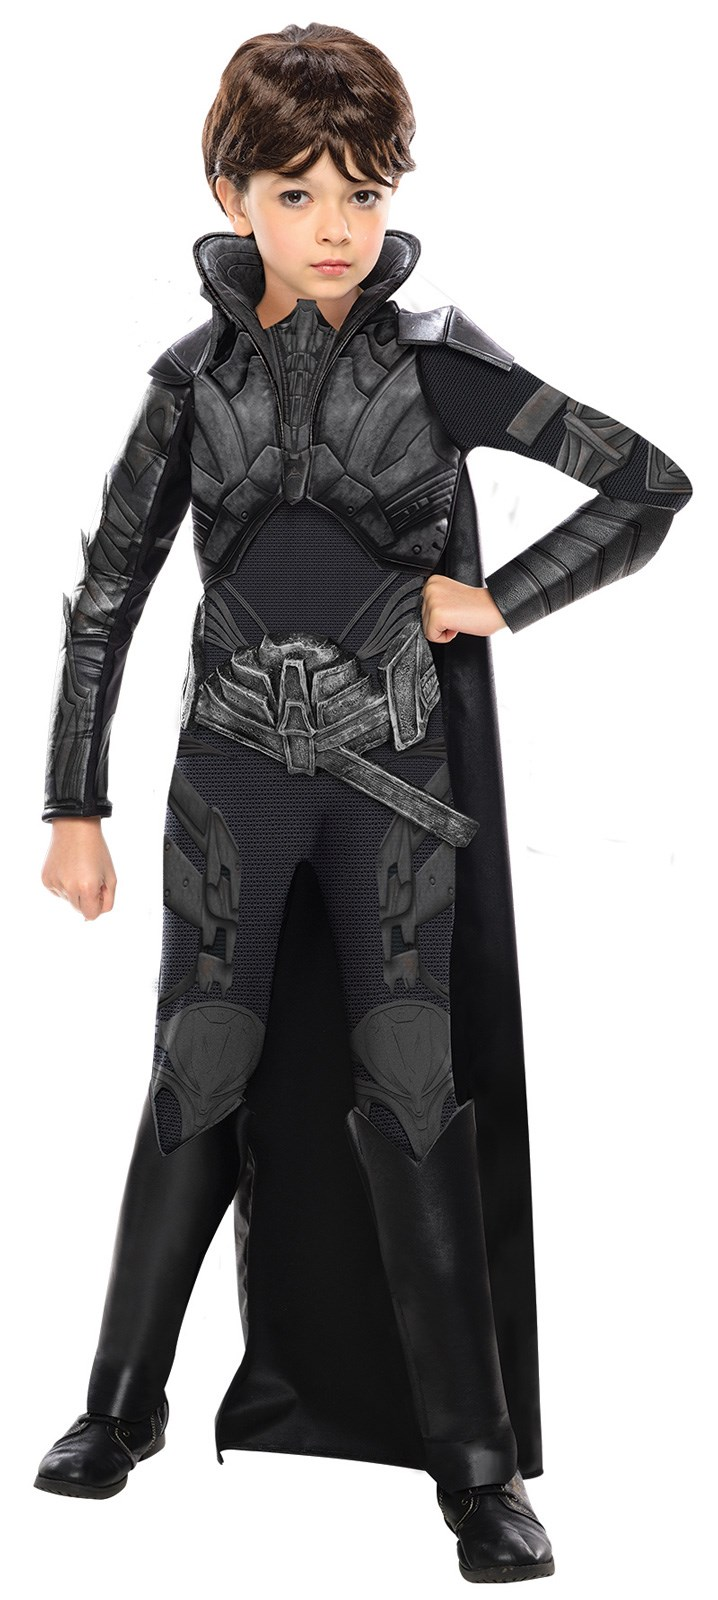 Superman Man of Steel Deluxe Faora Child Costume Small (4-6)